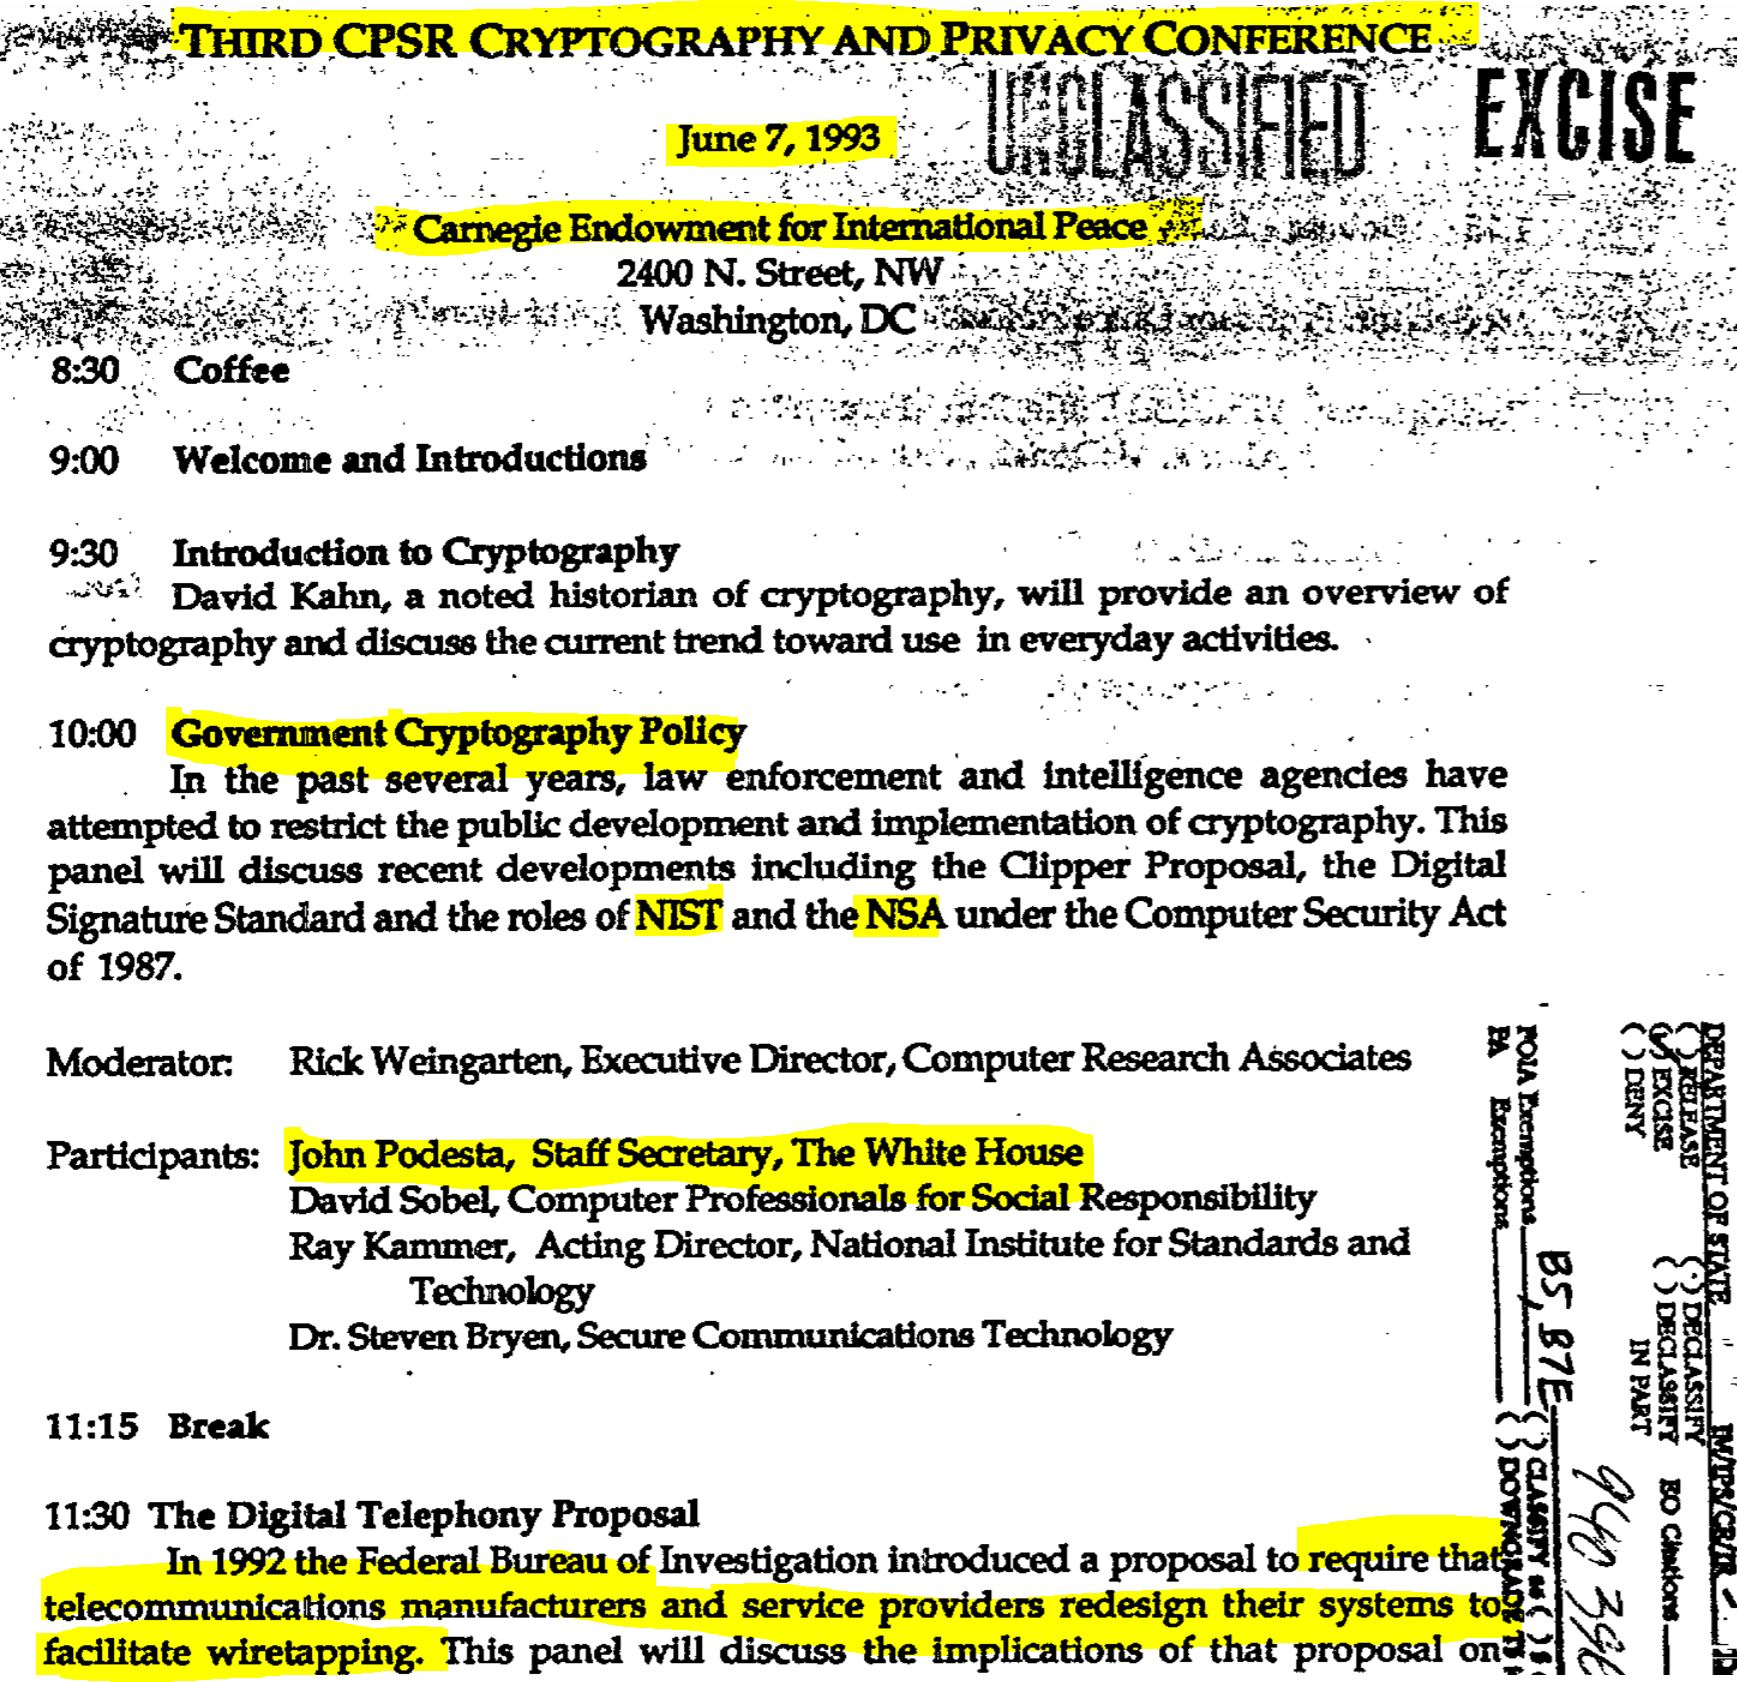 "On Jun. 07, 1993, Clinton, Bush, Obama consiglieri James P. Chandler III and Chief of Staff John D. Podesta, via the Carnegie Endowment for International Peace, sponsored the ""Third CPSR Cryptography and Privacy Conference"" to gather intelligence with the objective: 'to require that telecommunications manufacturers and service providers redesign their systems to facilitate wiretapping.'"